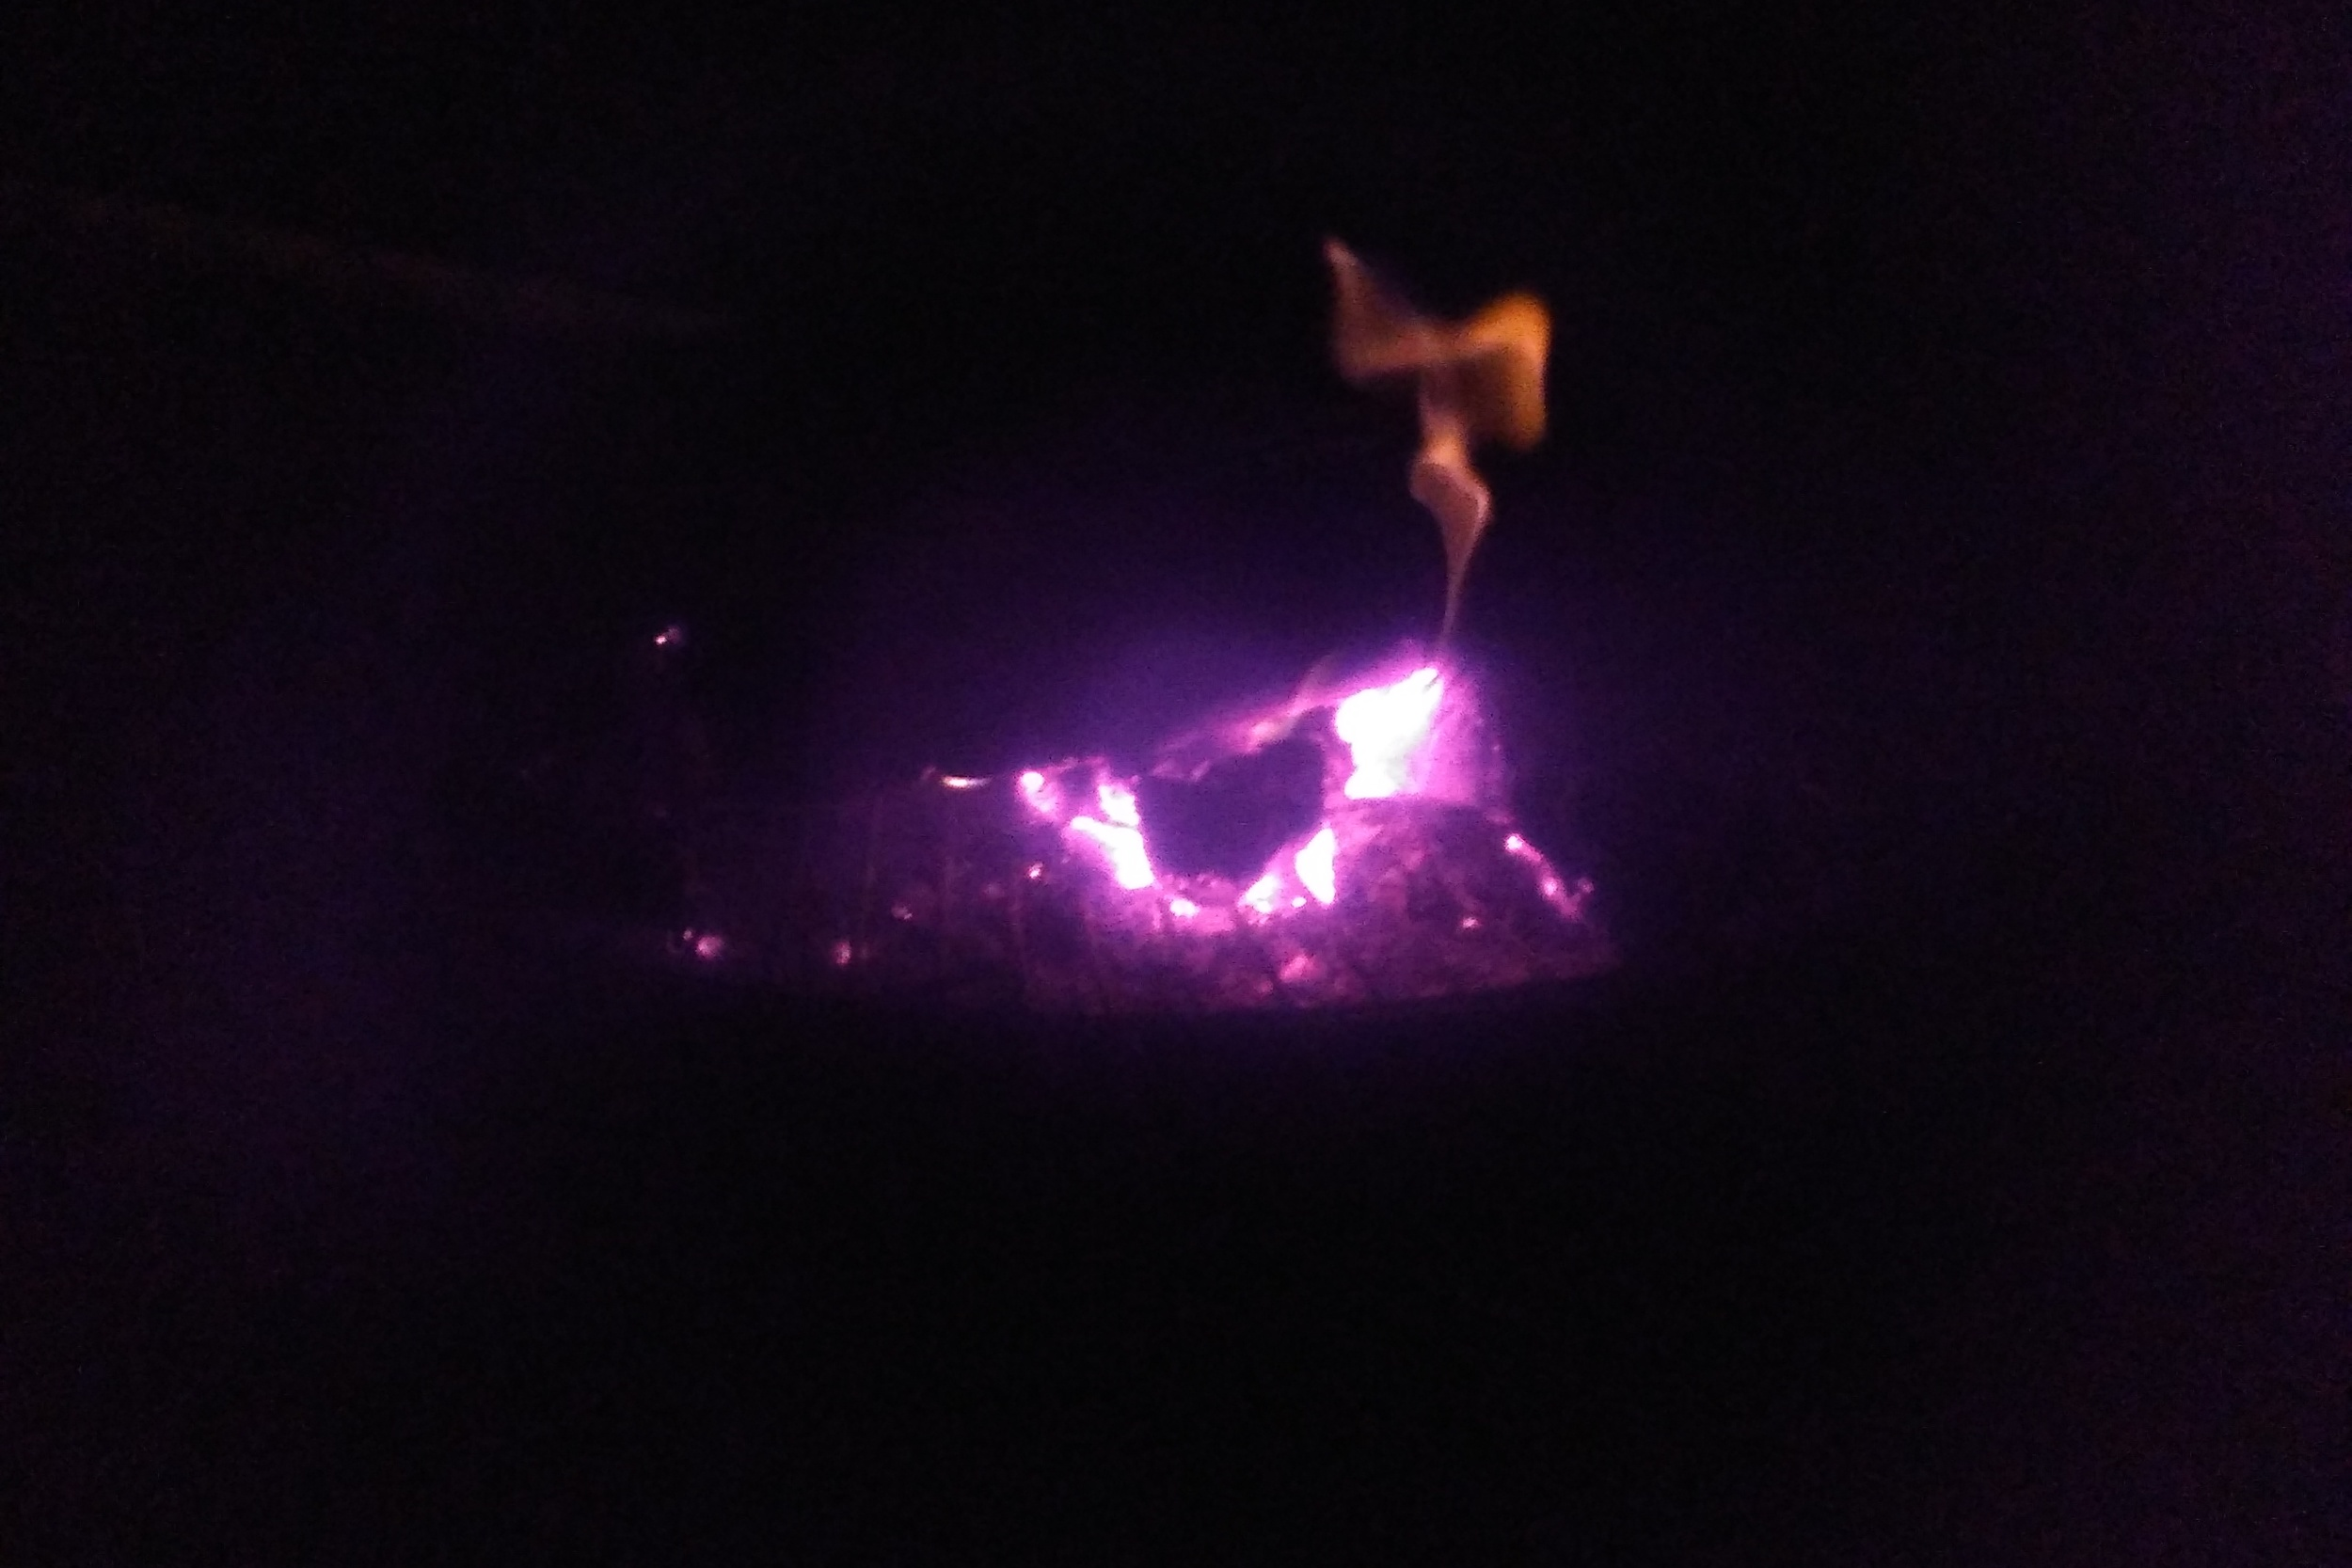 Martin's fire bowl put to good use - thanks Linda for the picture.